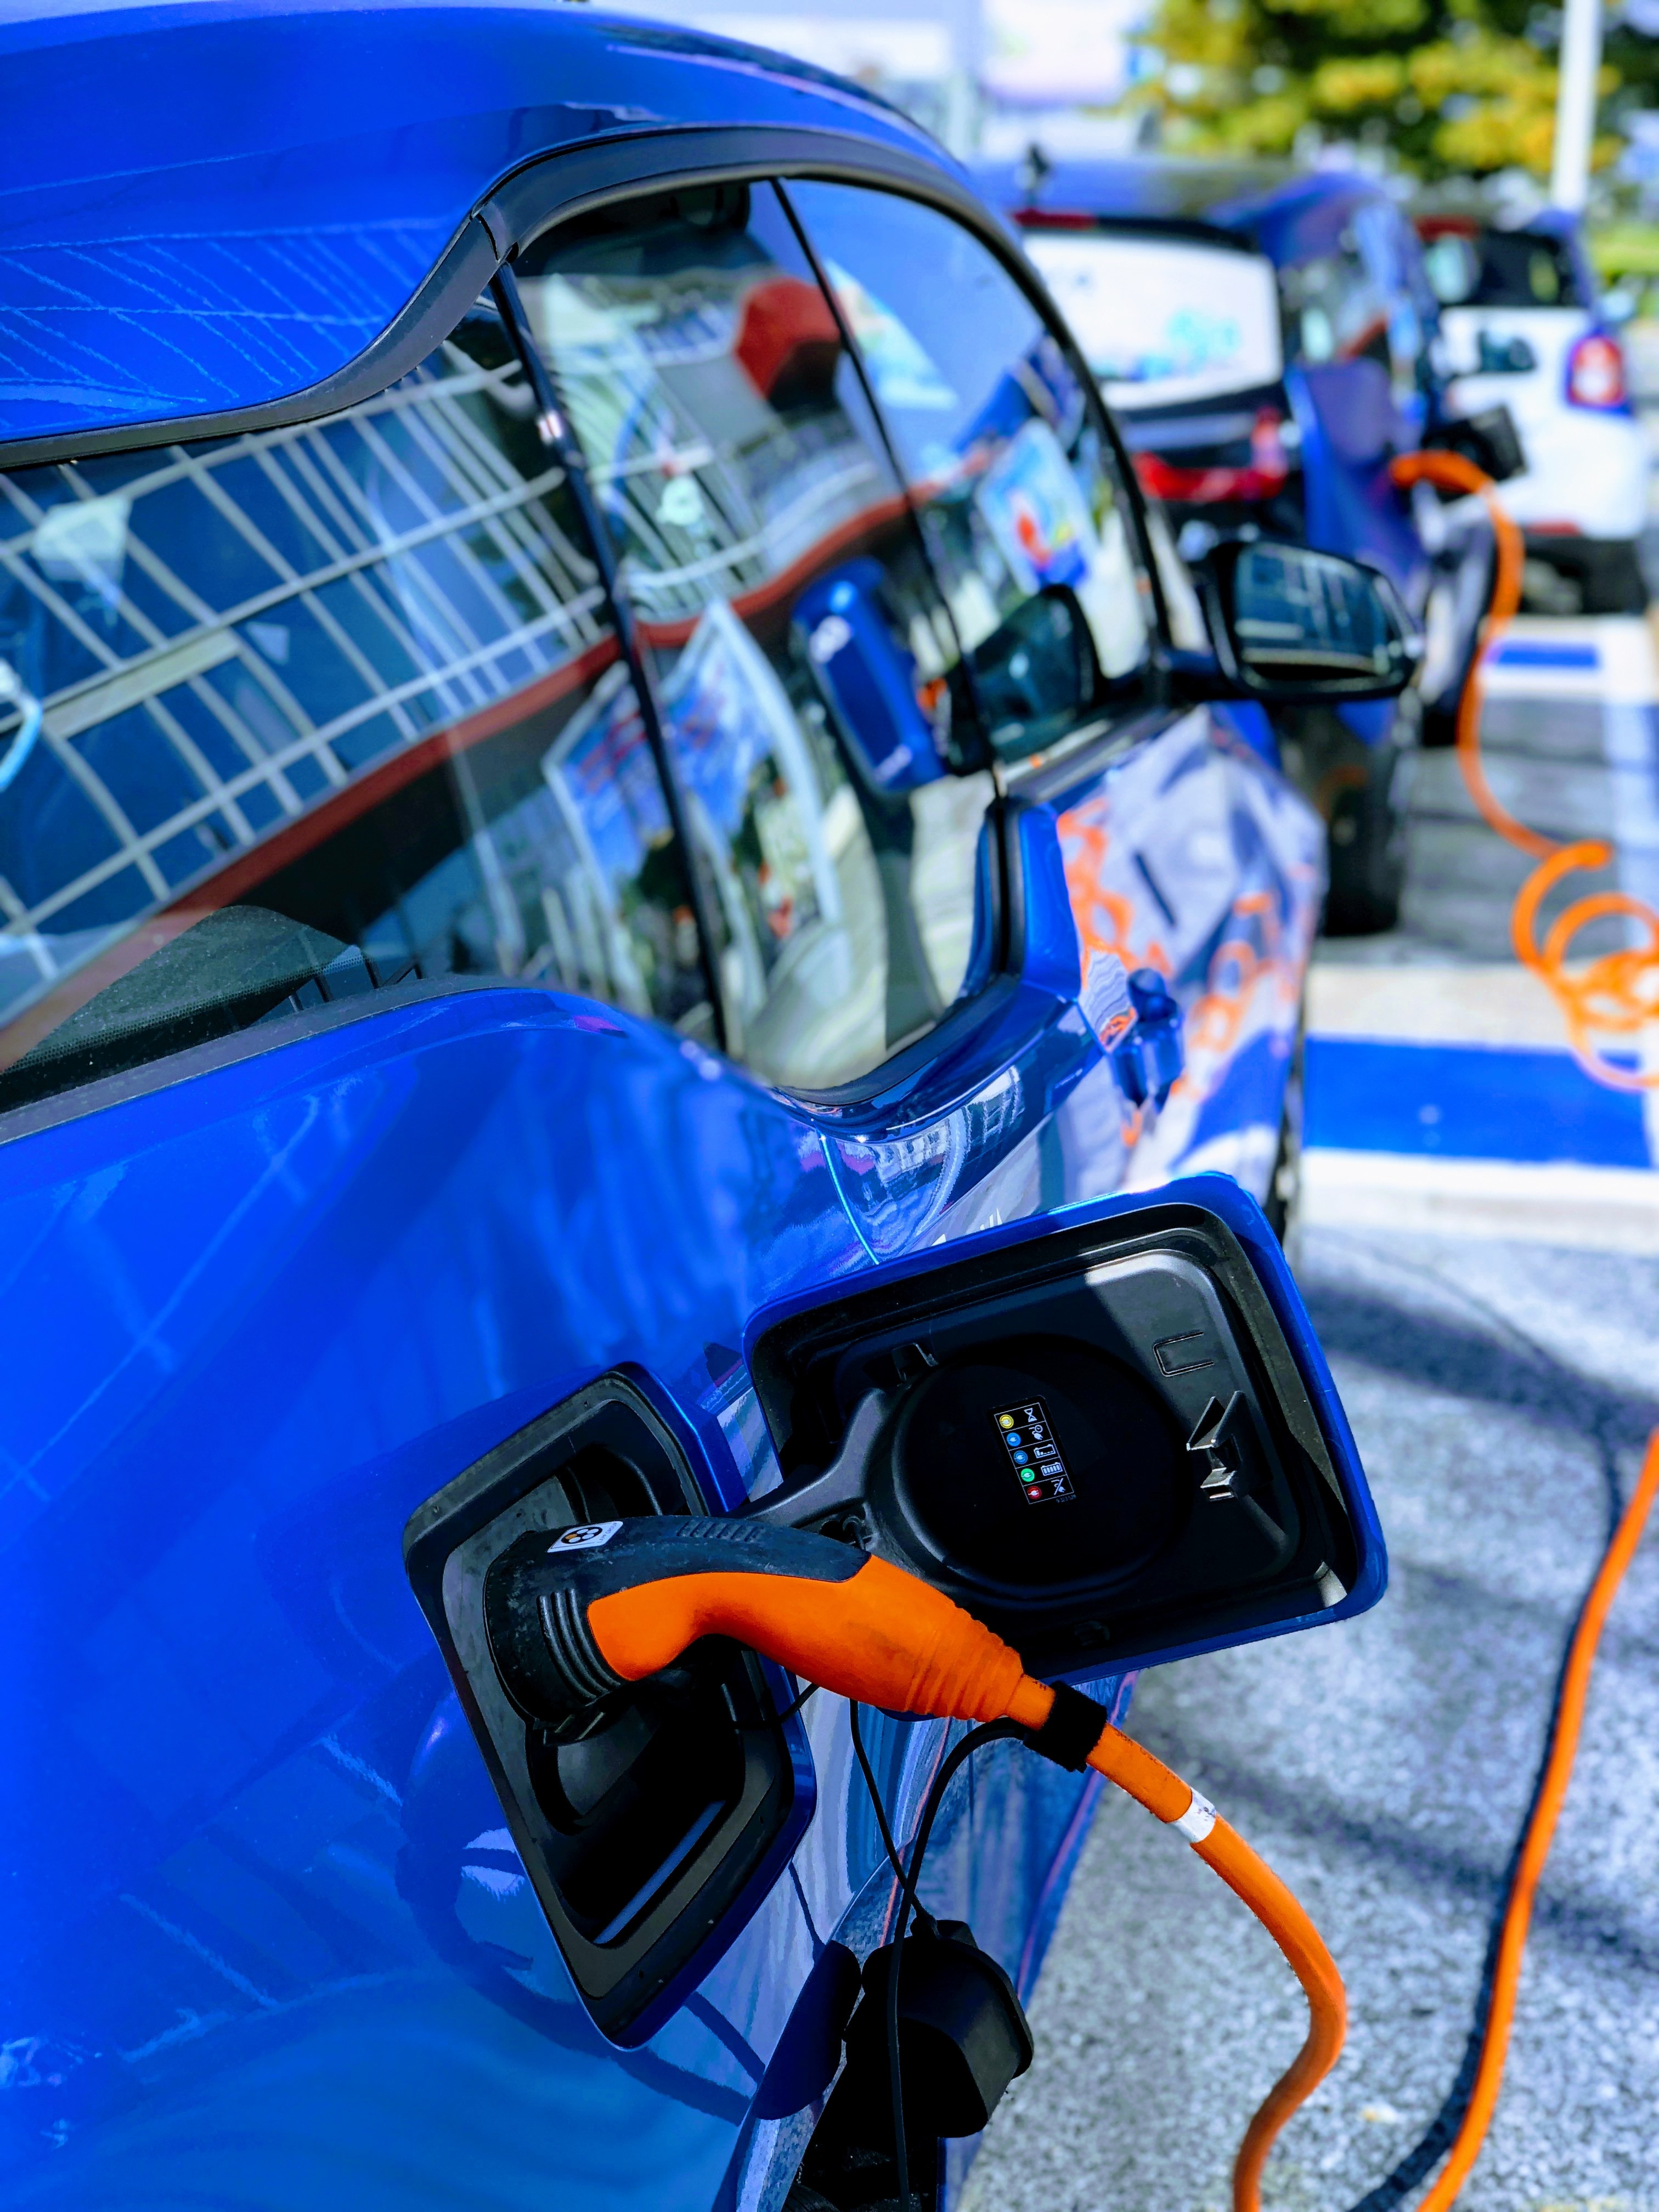 New EV Rebates Now Available for Pepco Maryland Customers - My Green